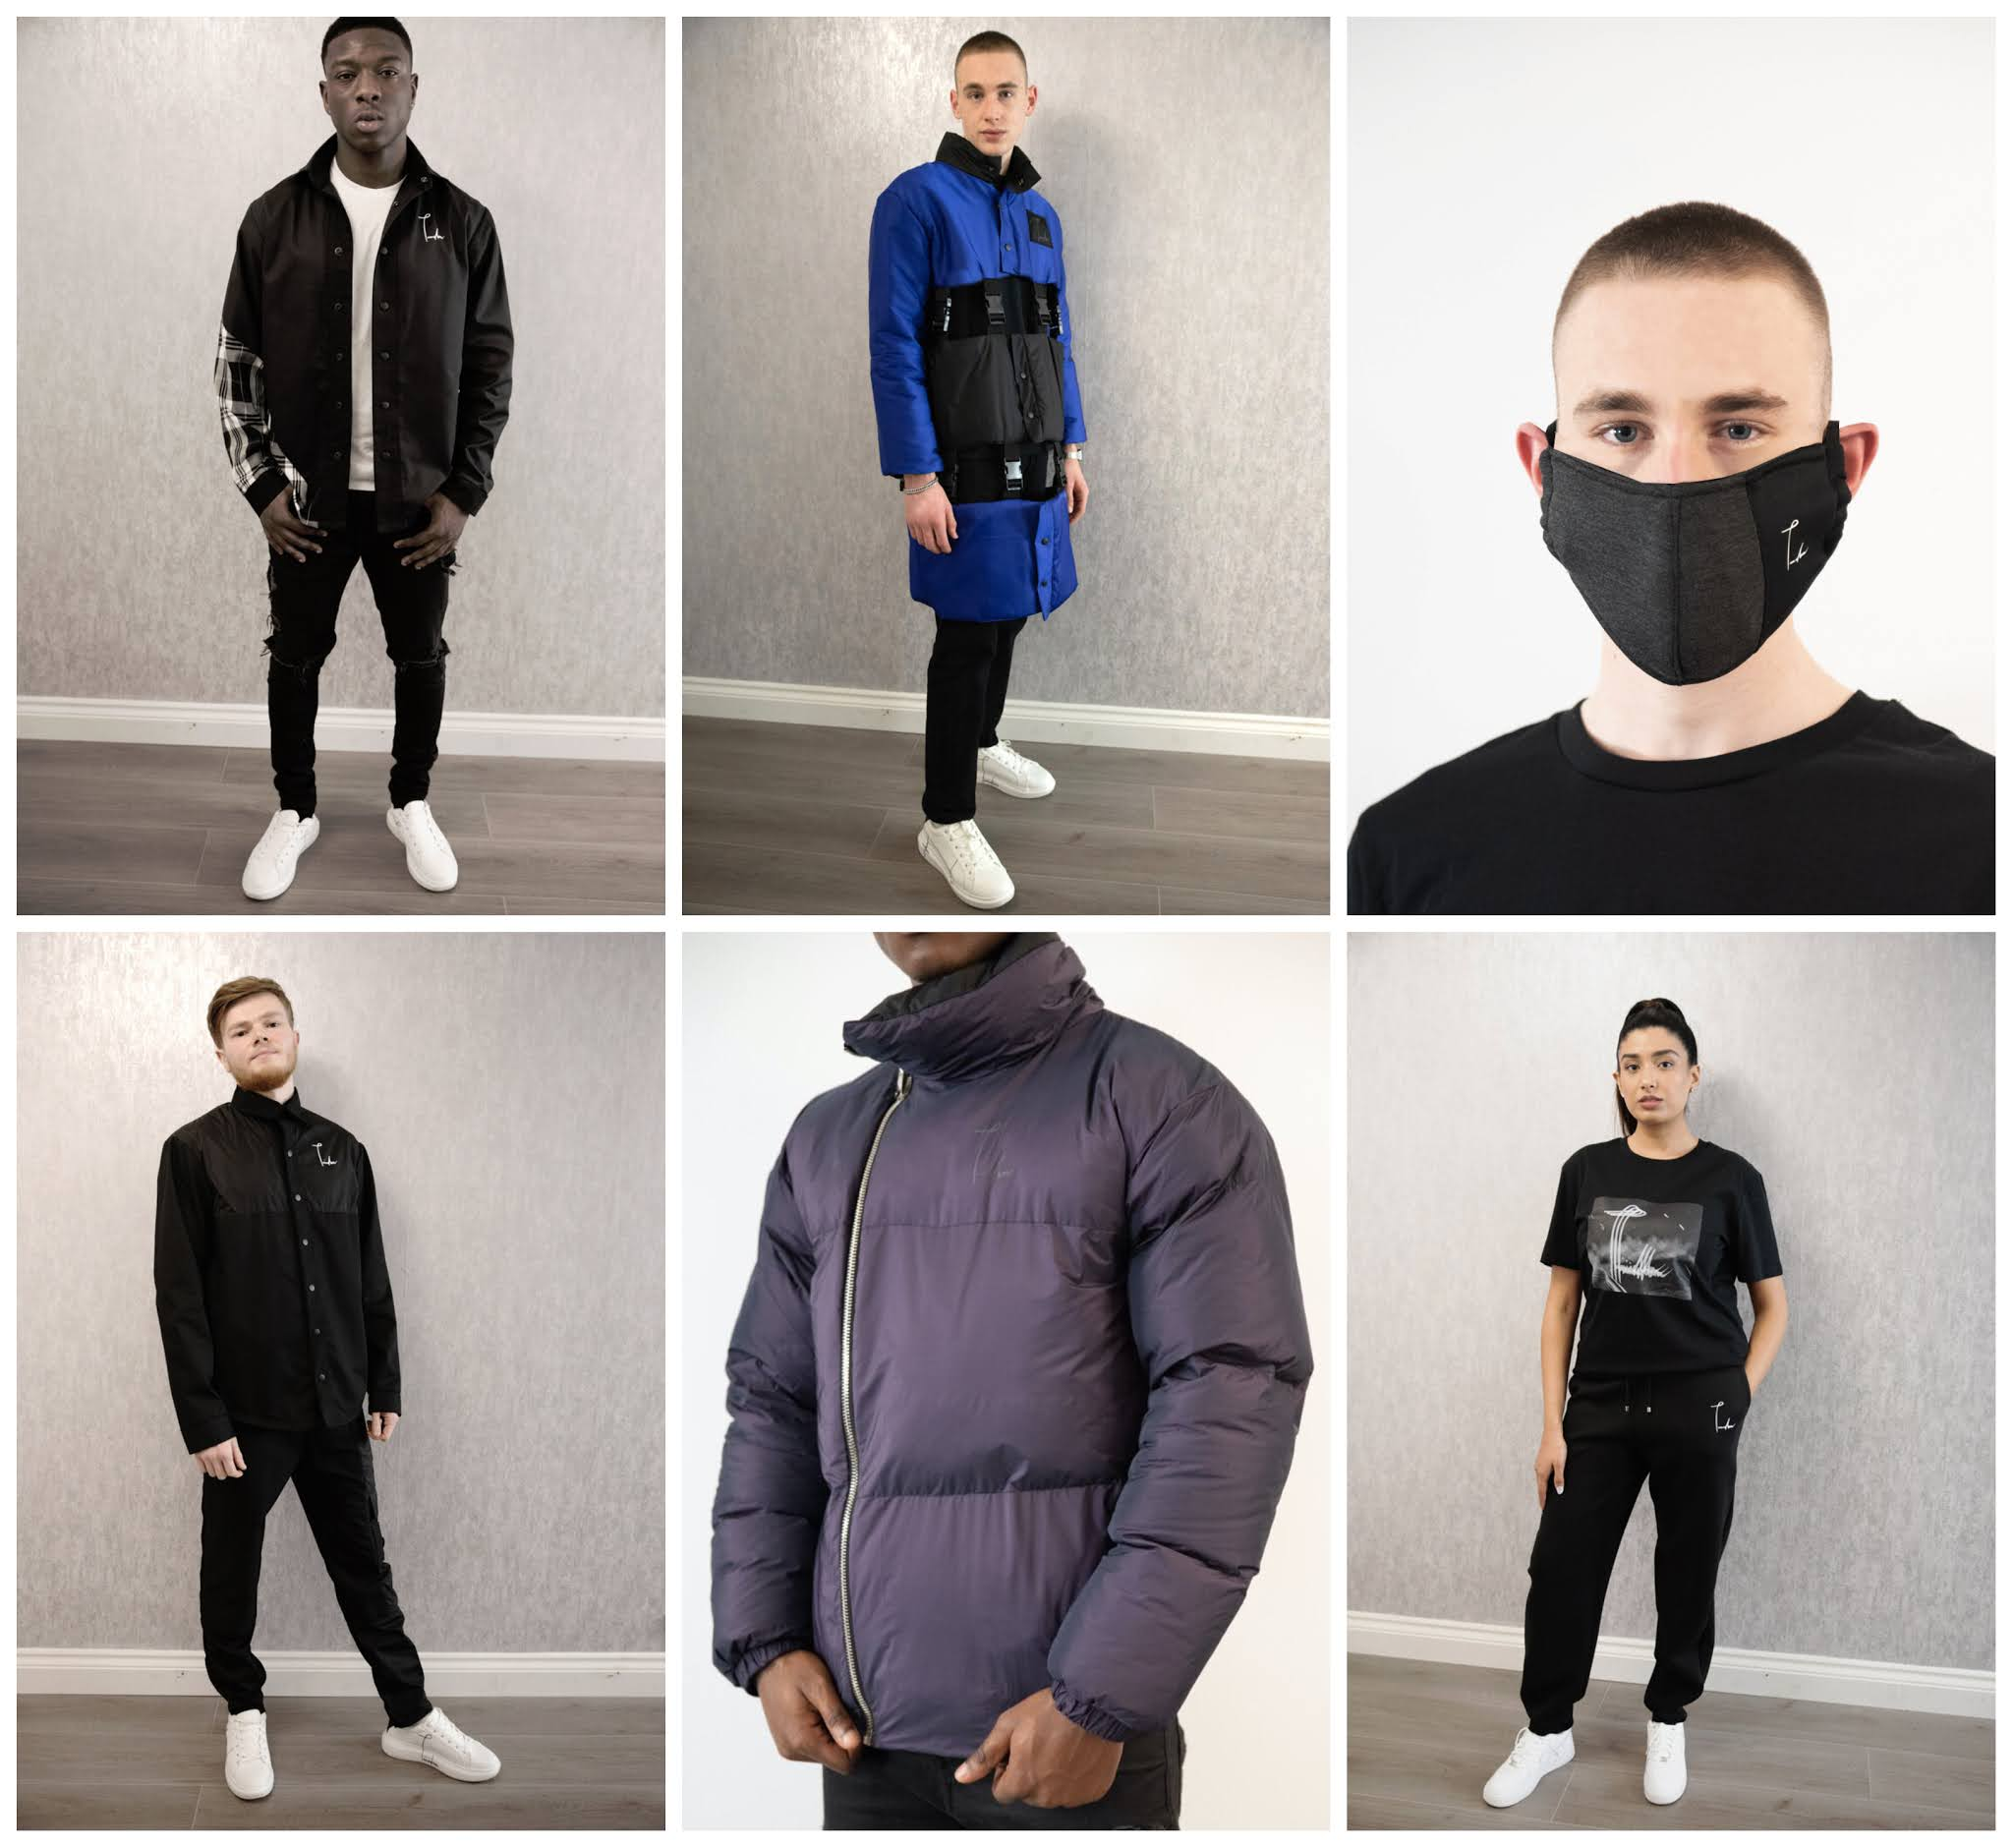 The New World luxury streetwear collection